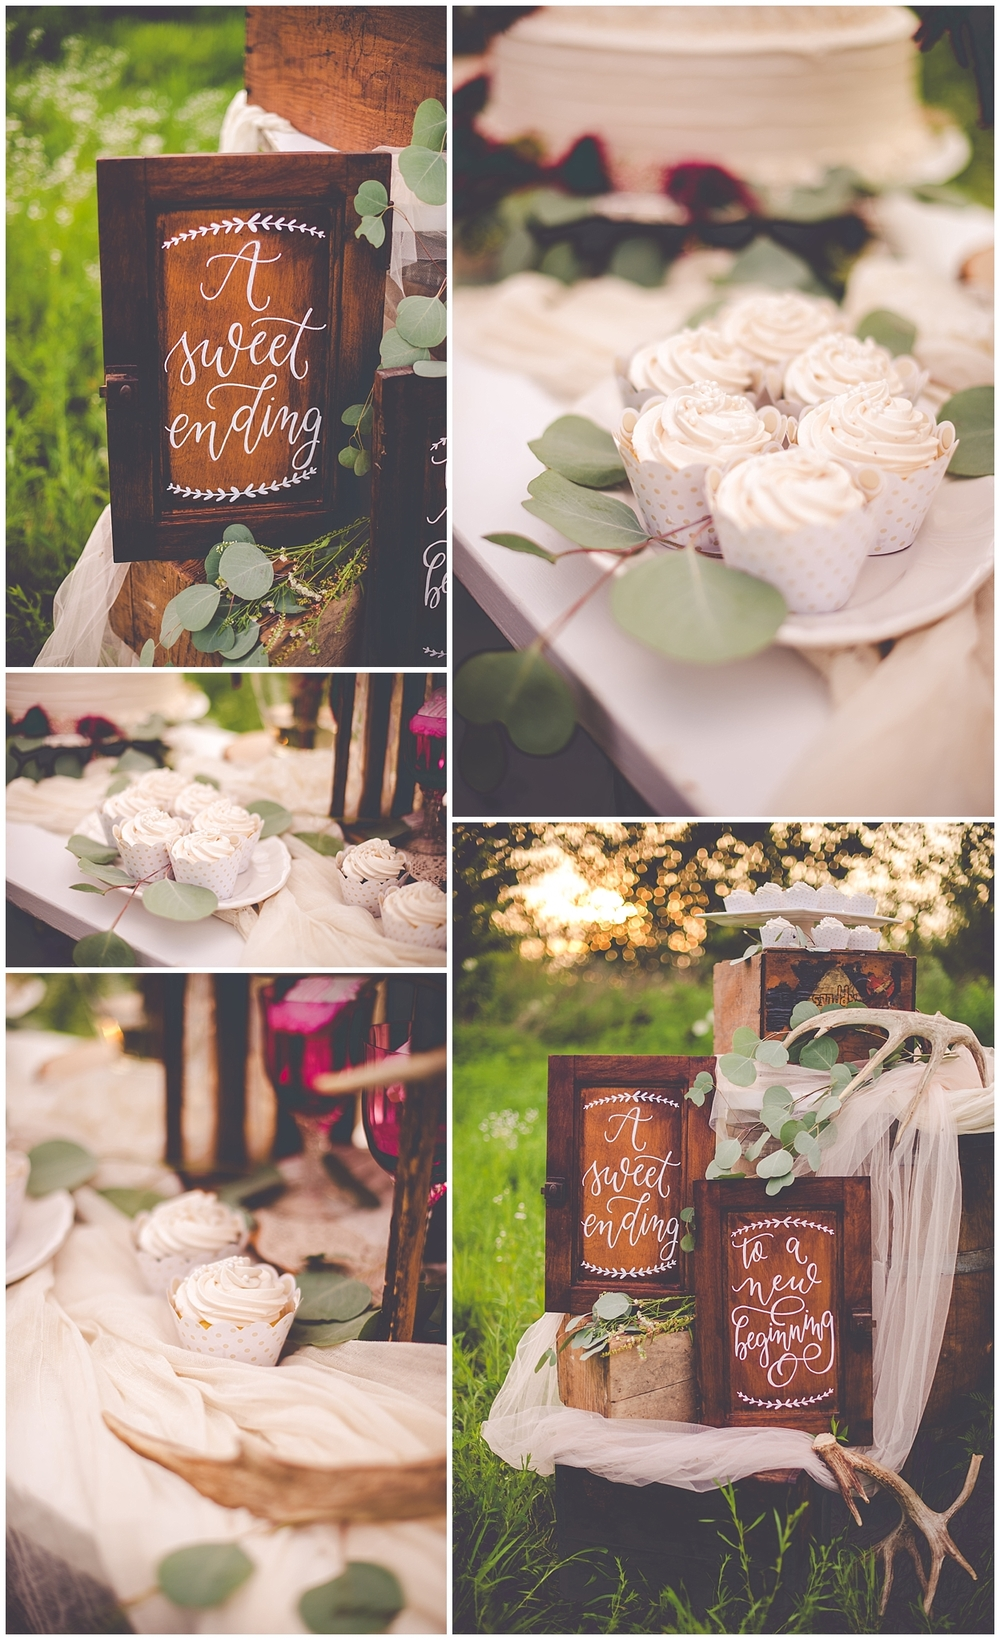 By Kara - Kara Evans - Bradley Bourbonnais Tuesdays Together - Styled Shoot - Rustic Floral Boho Wedding Styled Shoot - Bradley Bourbonnais IL Wedding Vendors - Summer Floral Boho Styled Shoot - Floral Boho Wedding Cake Table - Outdoor Wedding Sweets Table